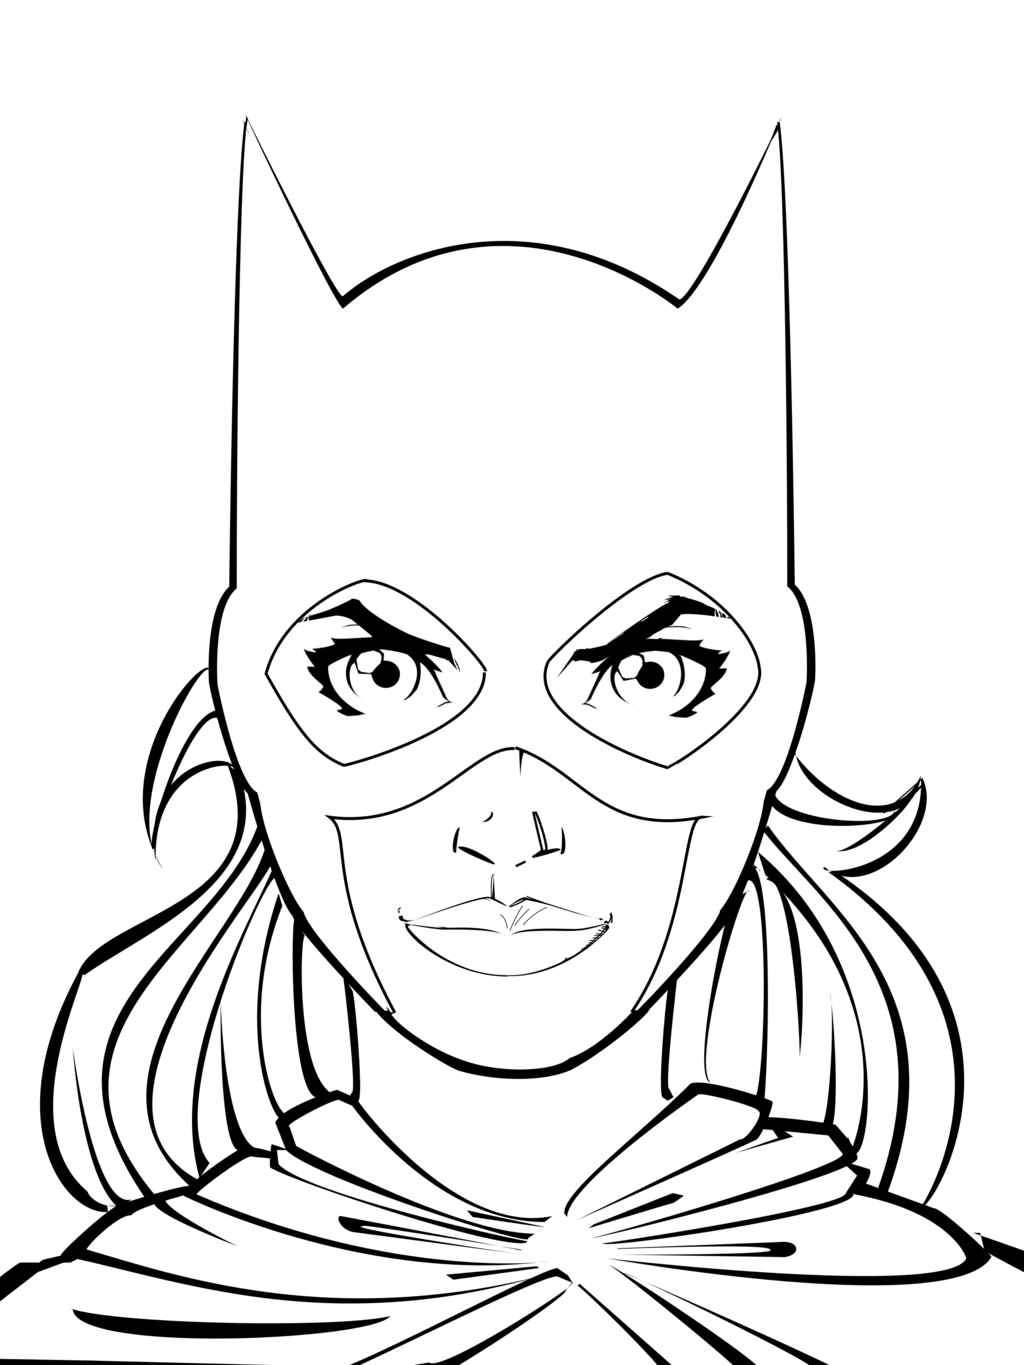 free batgirl coloring pages | Batgirl Coloring Pages | Coloring pages, Superhero ...